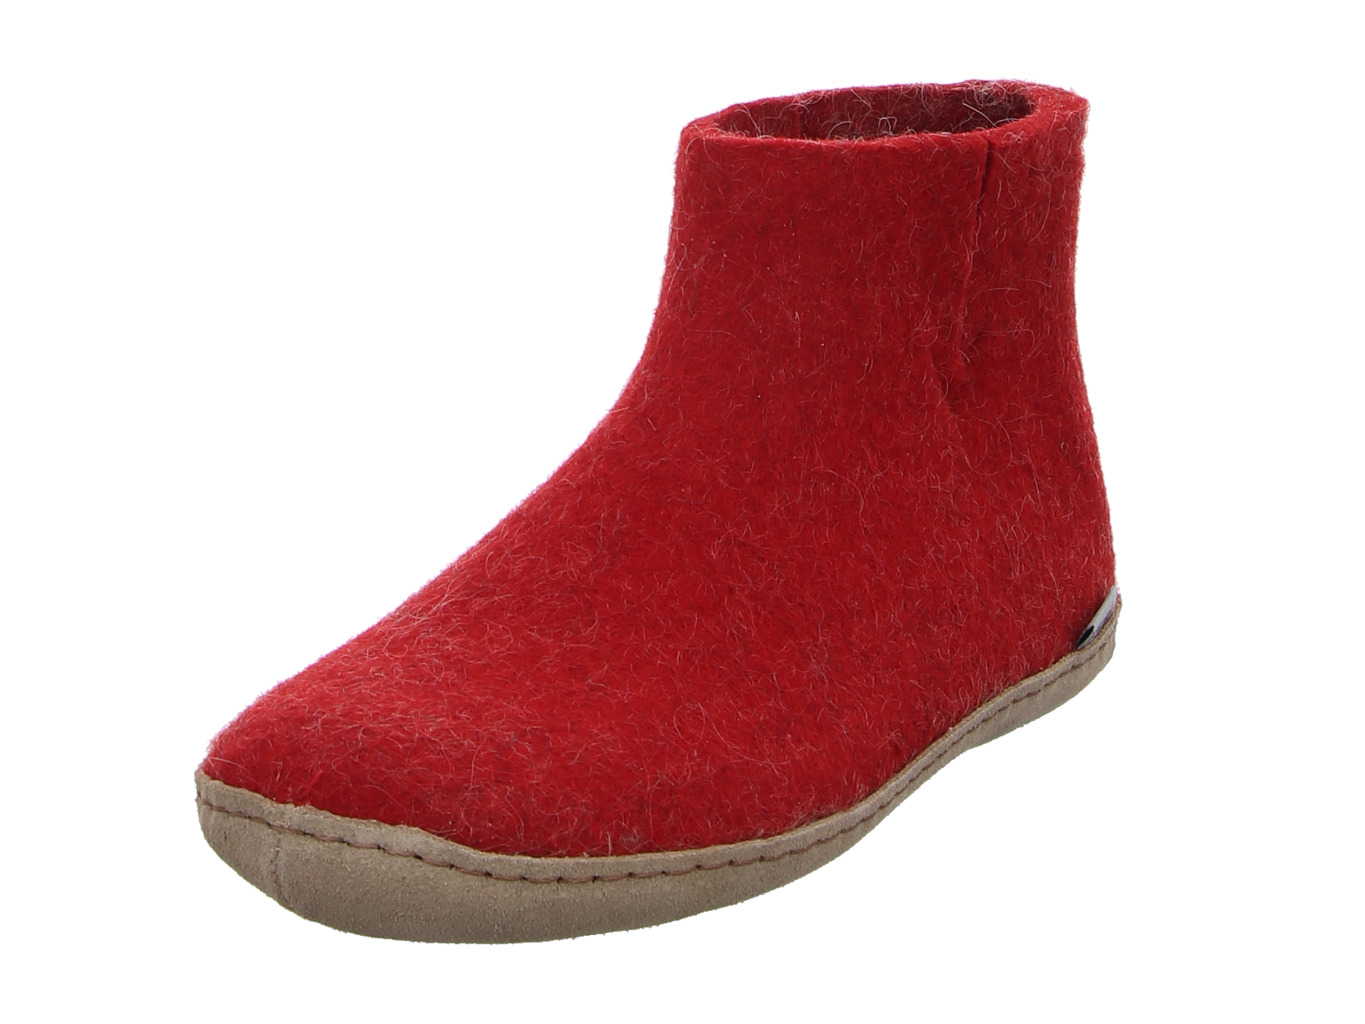 glerups_low_boot_rot_g_08_00_red_1204